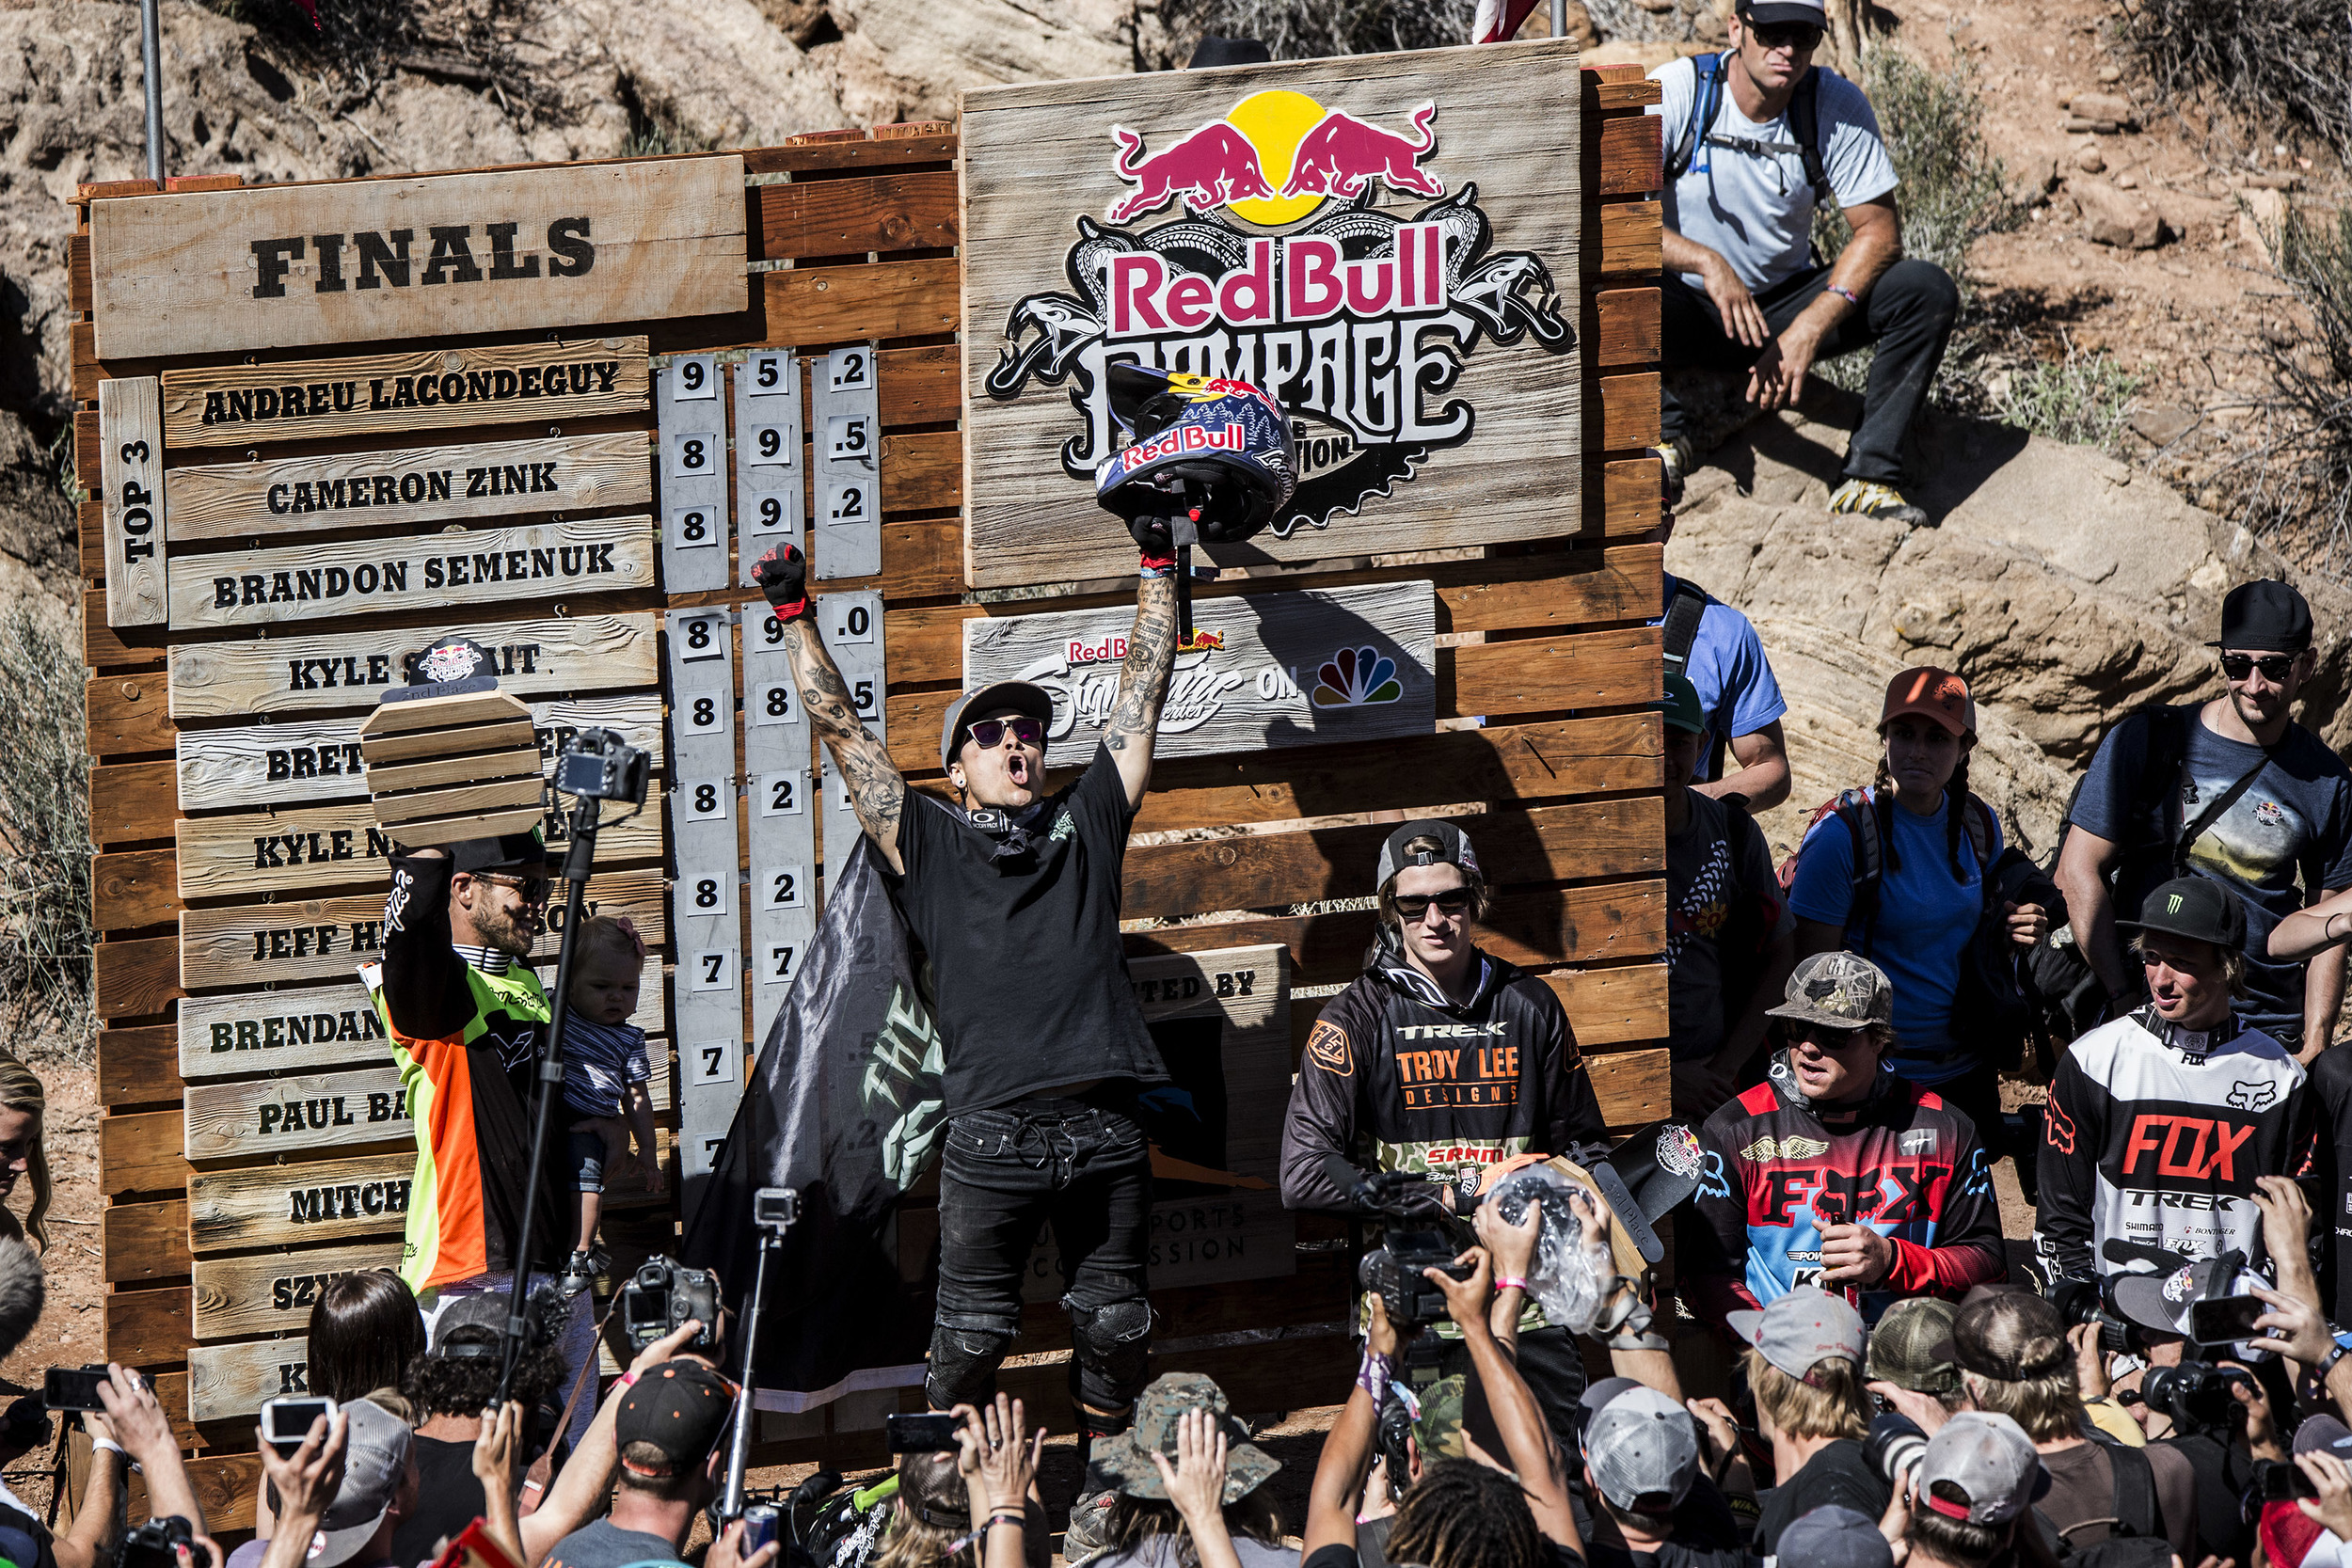 Event winner Andreu Locondeguy (C) of Spain, second placed Cameron Zink (L) of the USA and third placed Brandon Semenuk of Canada celebrate on the podium after the finals of Red Bull Rampage in Virgin, Utah, USA on 29 September 2014.